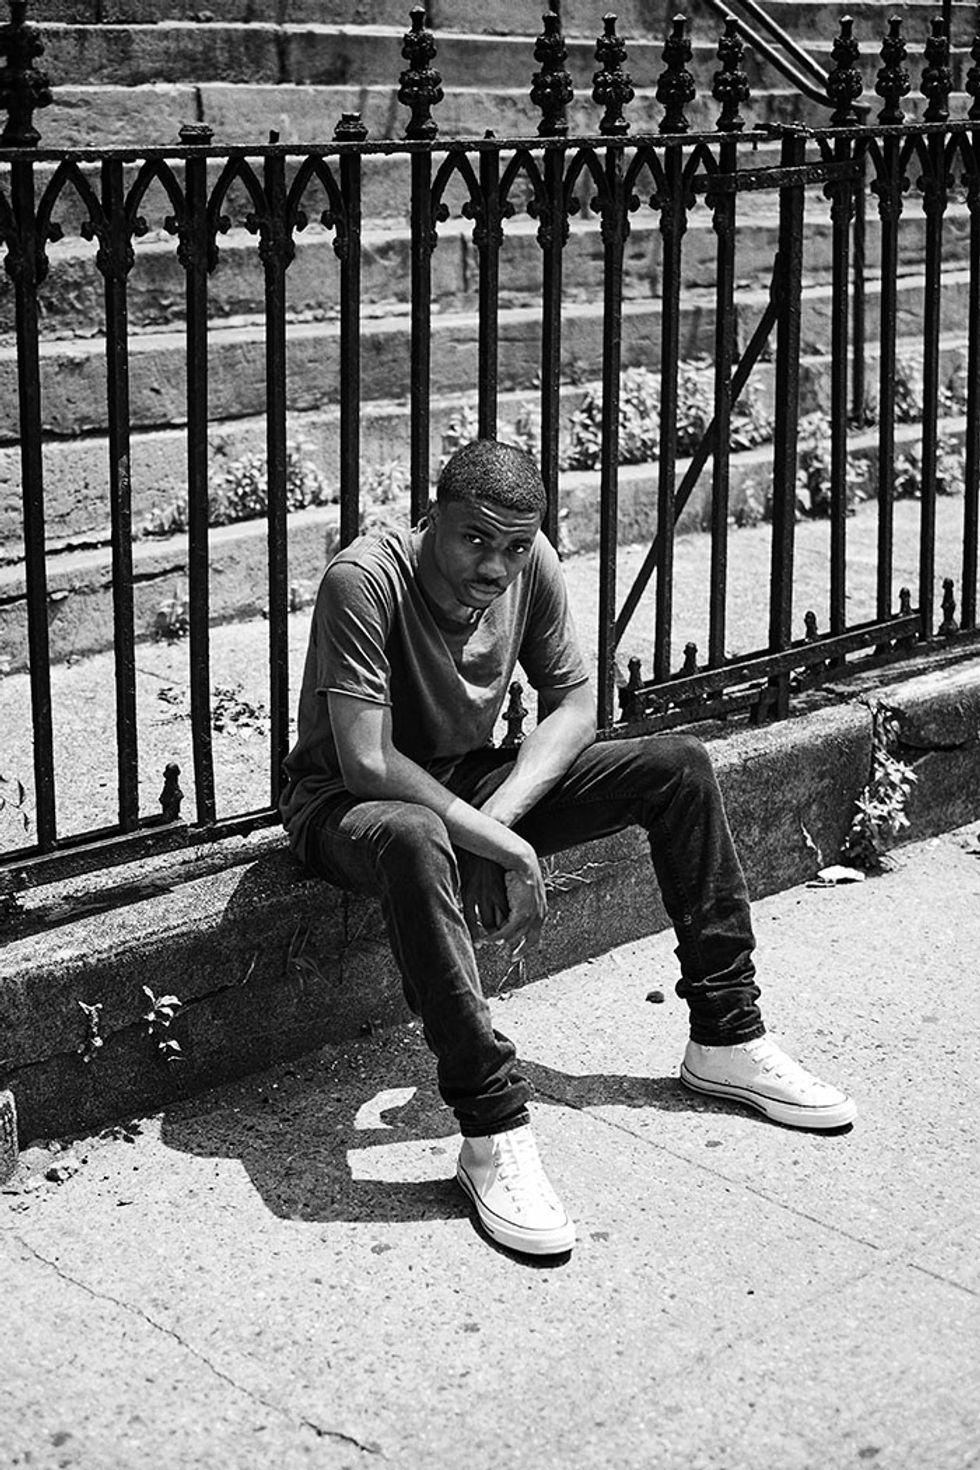 Vince Staples & Summertime '06: The Coming of Age Tale of One of Hip-Hop's Most Exciting New Voices